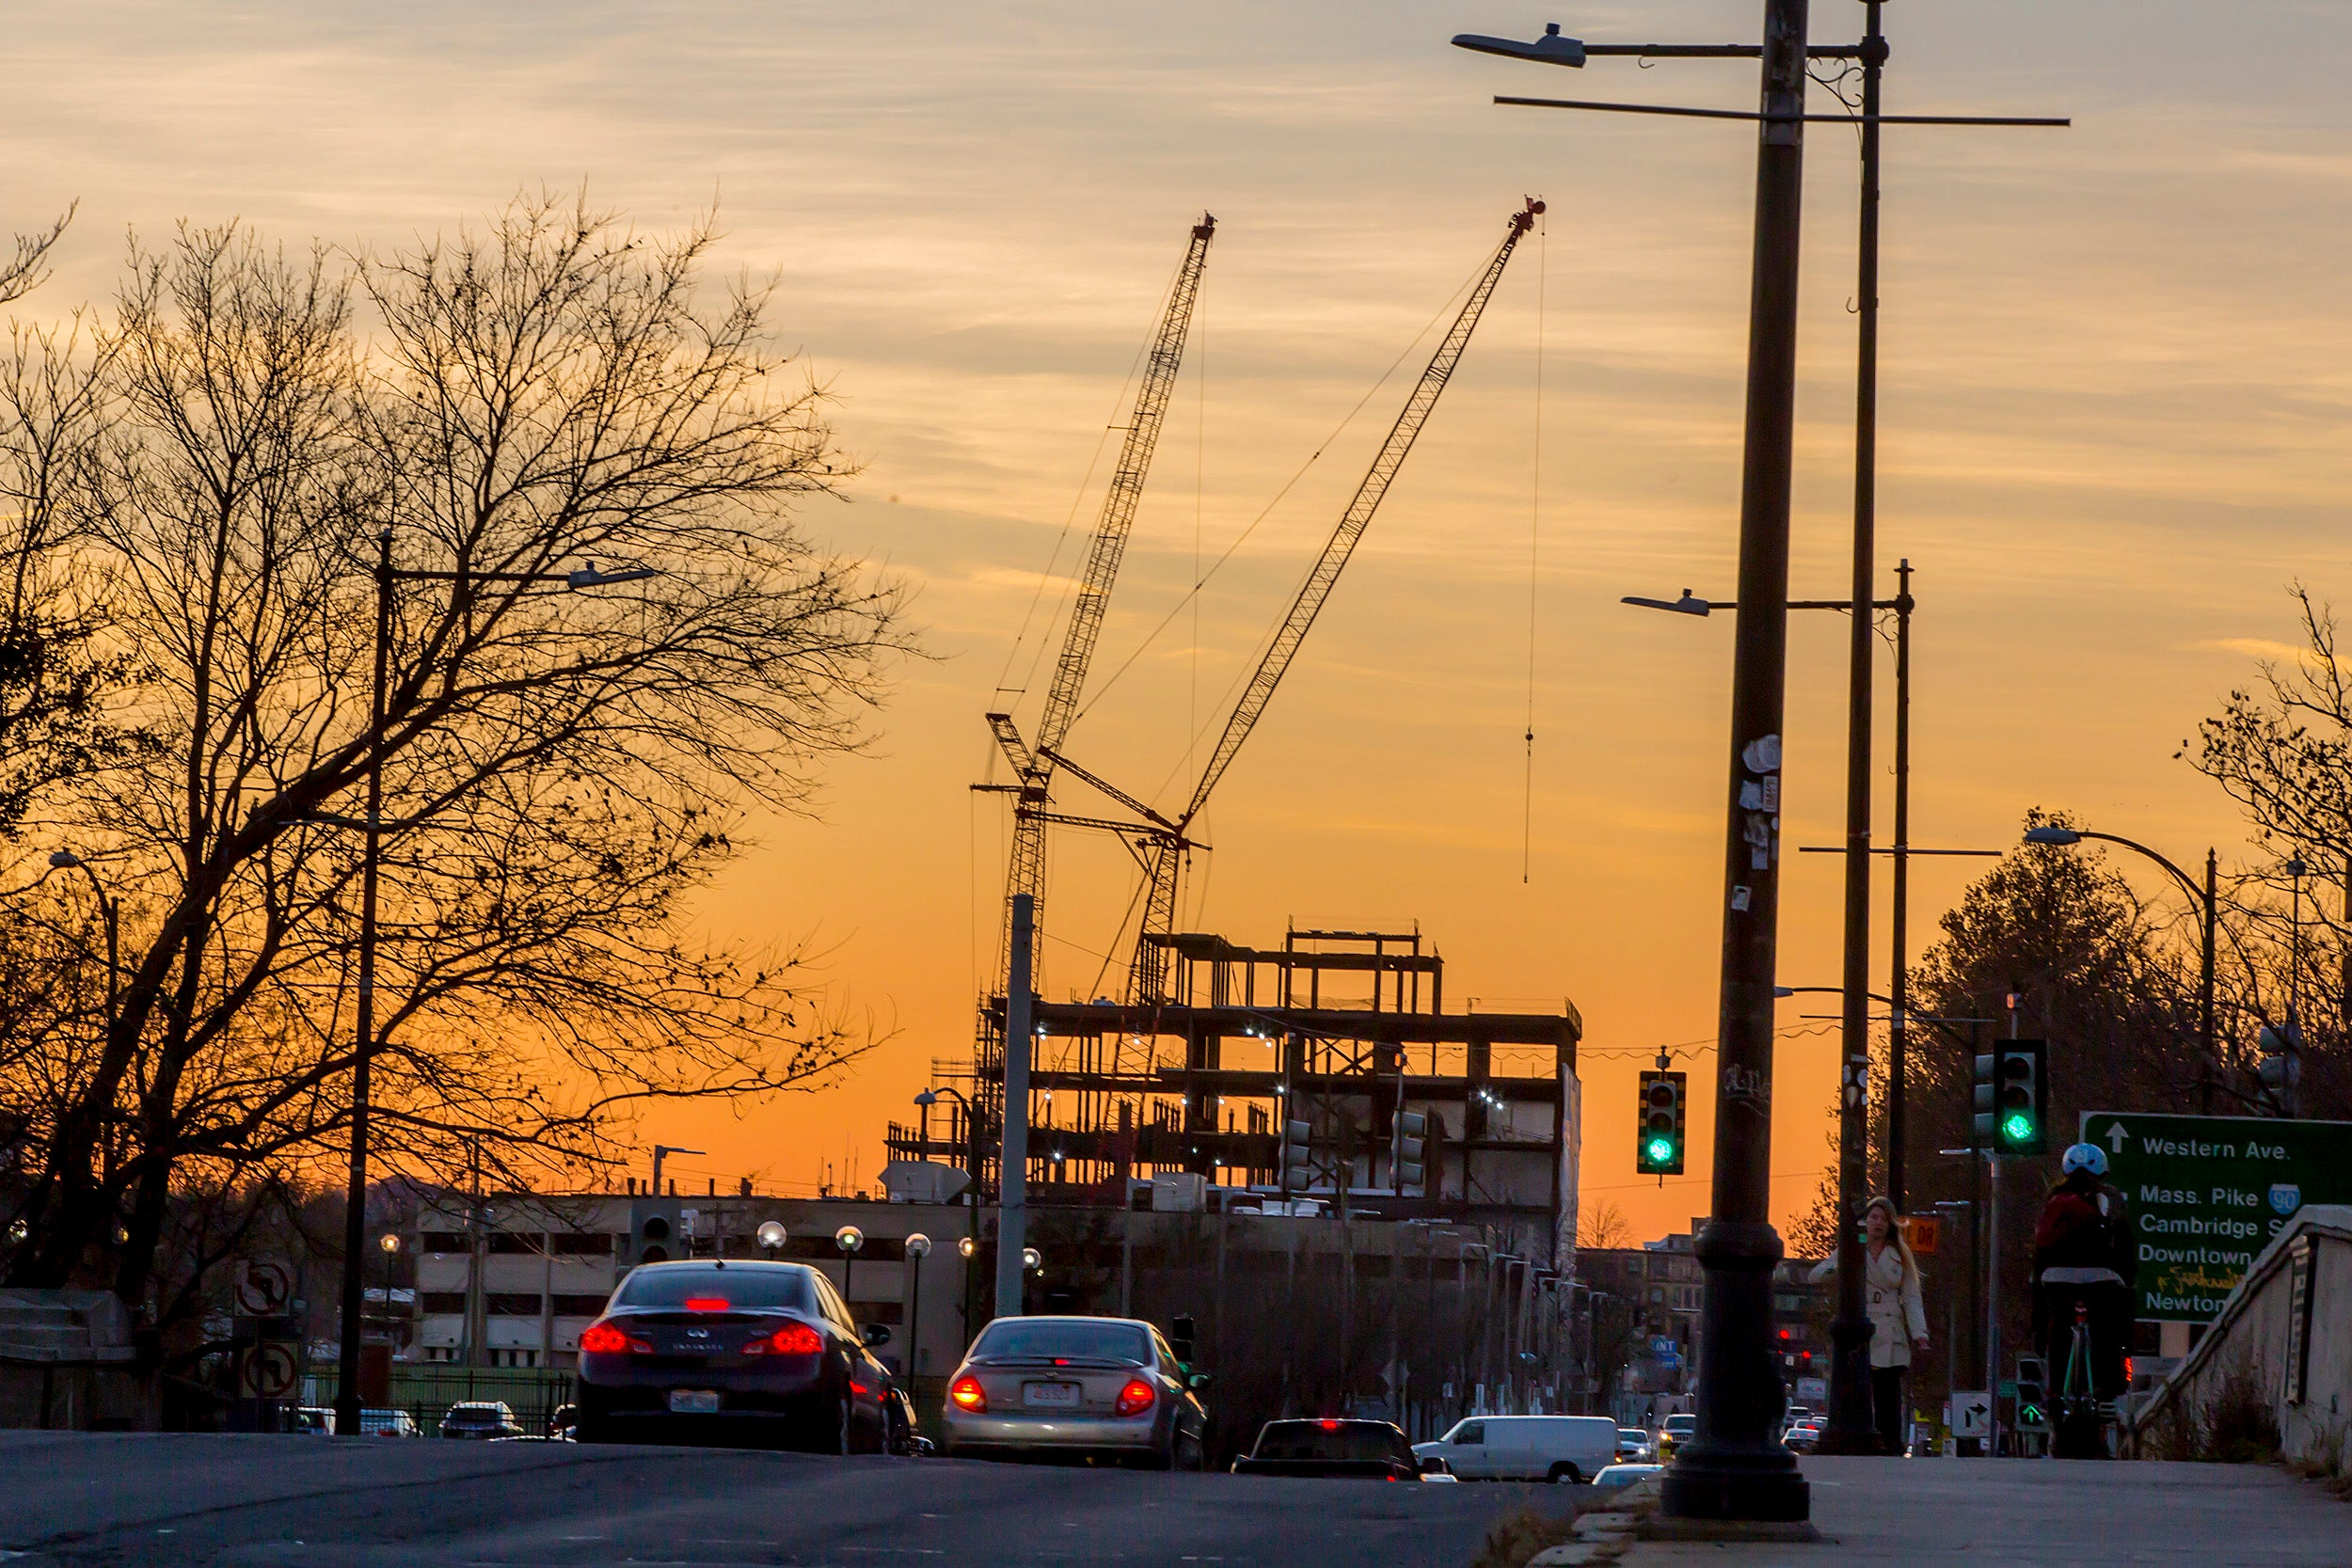 Building under construction in front of a sunset